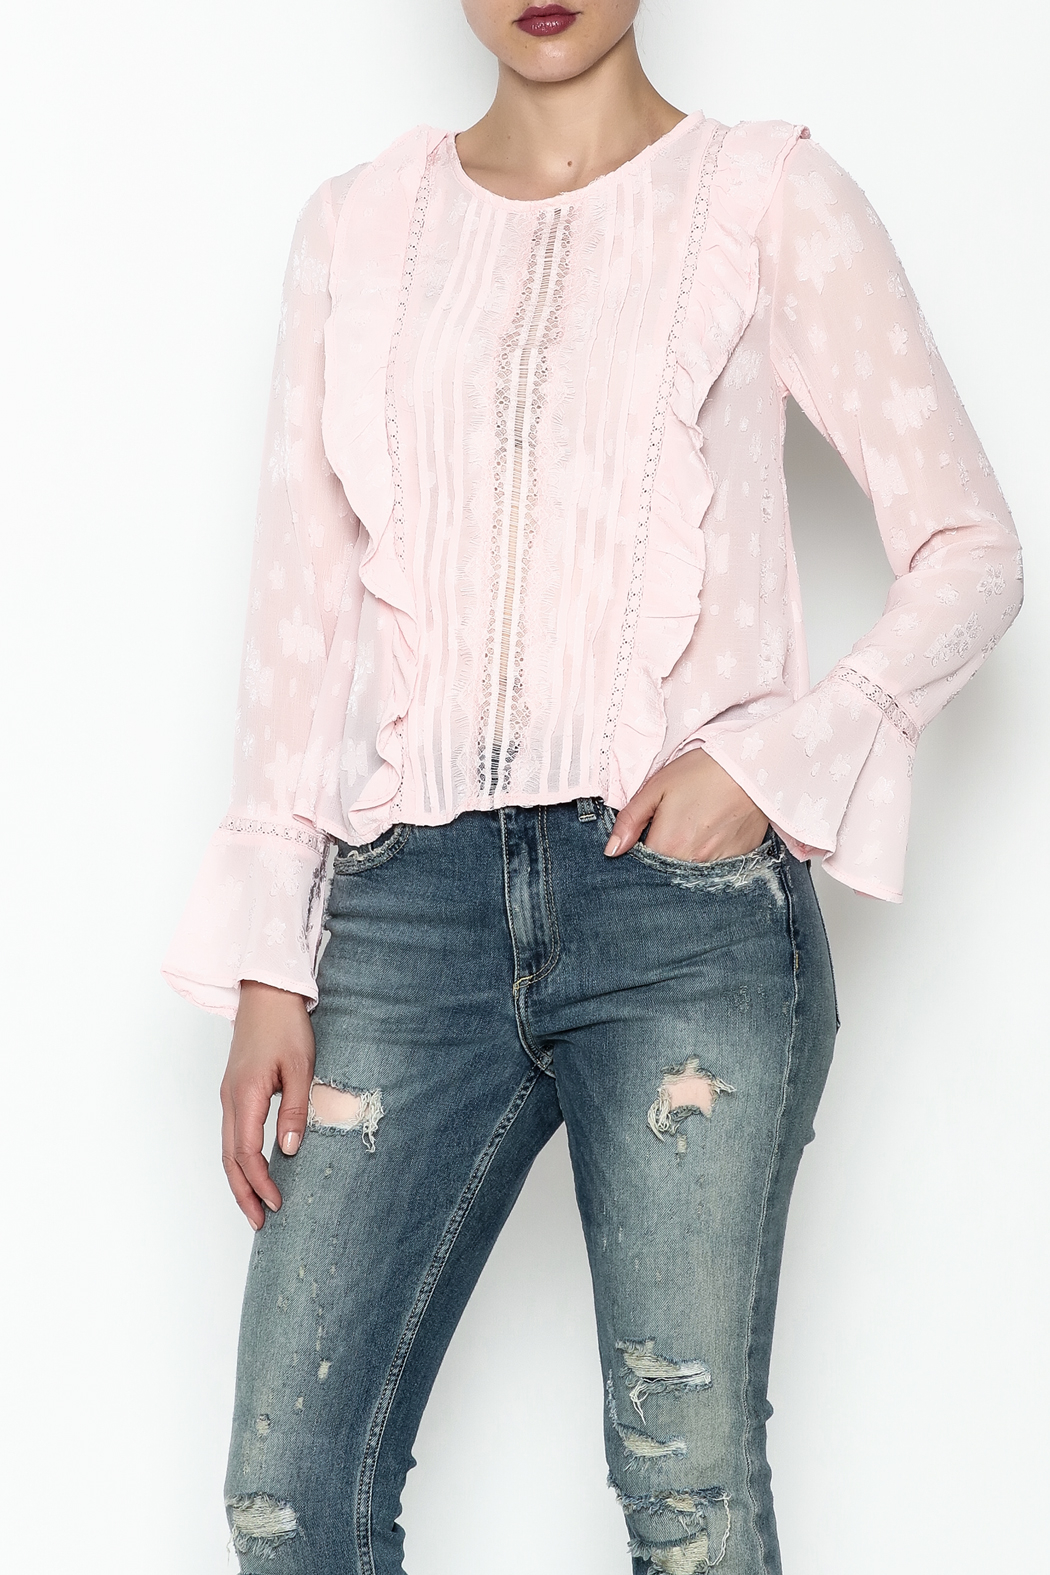 Ark & Co. Pullover Ruffle Blouse - Front Cropped Image